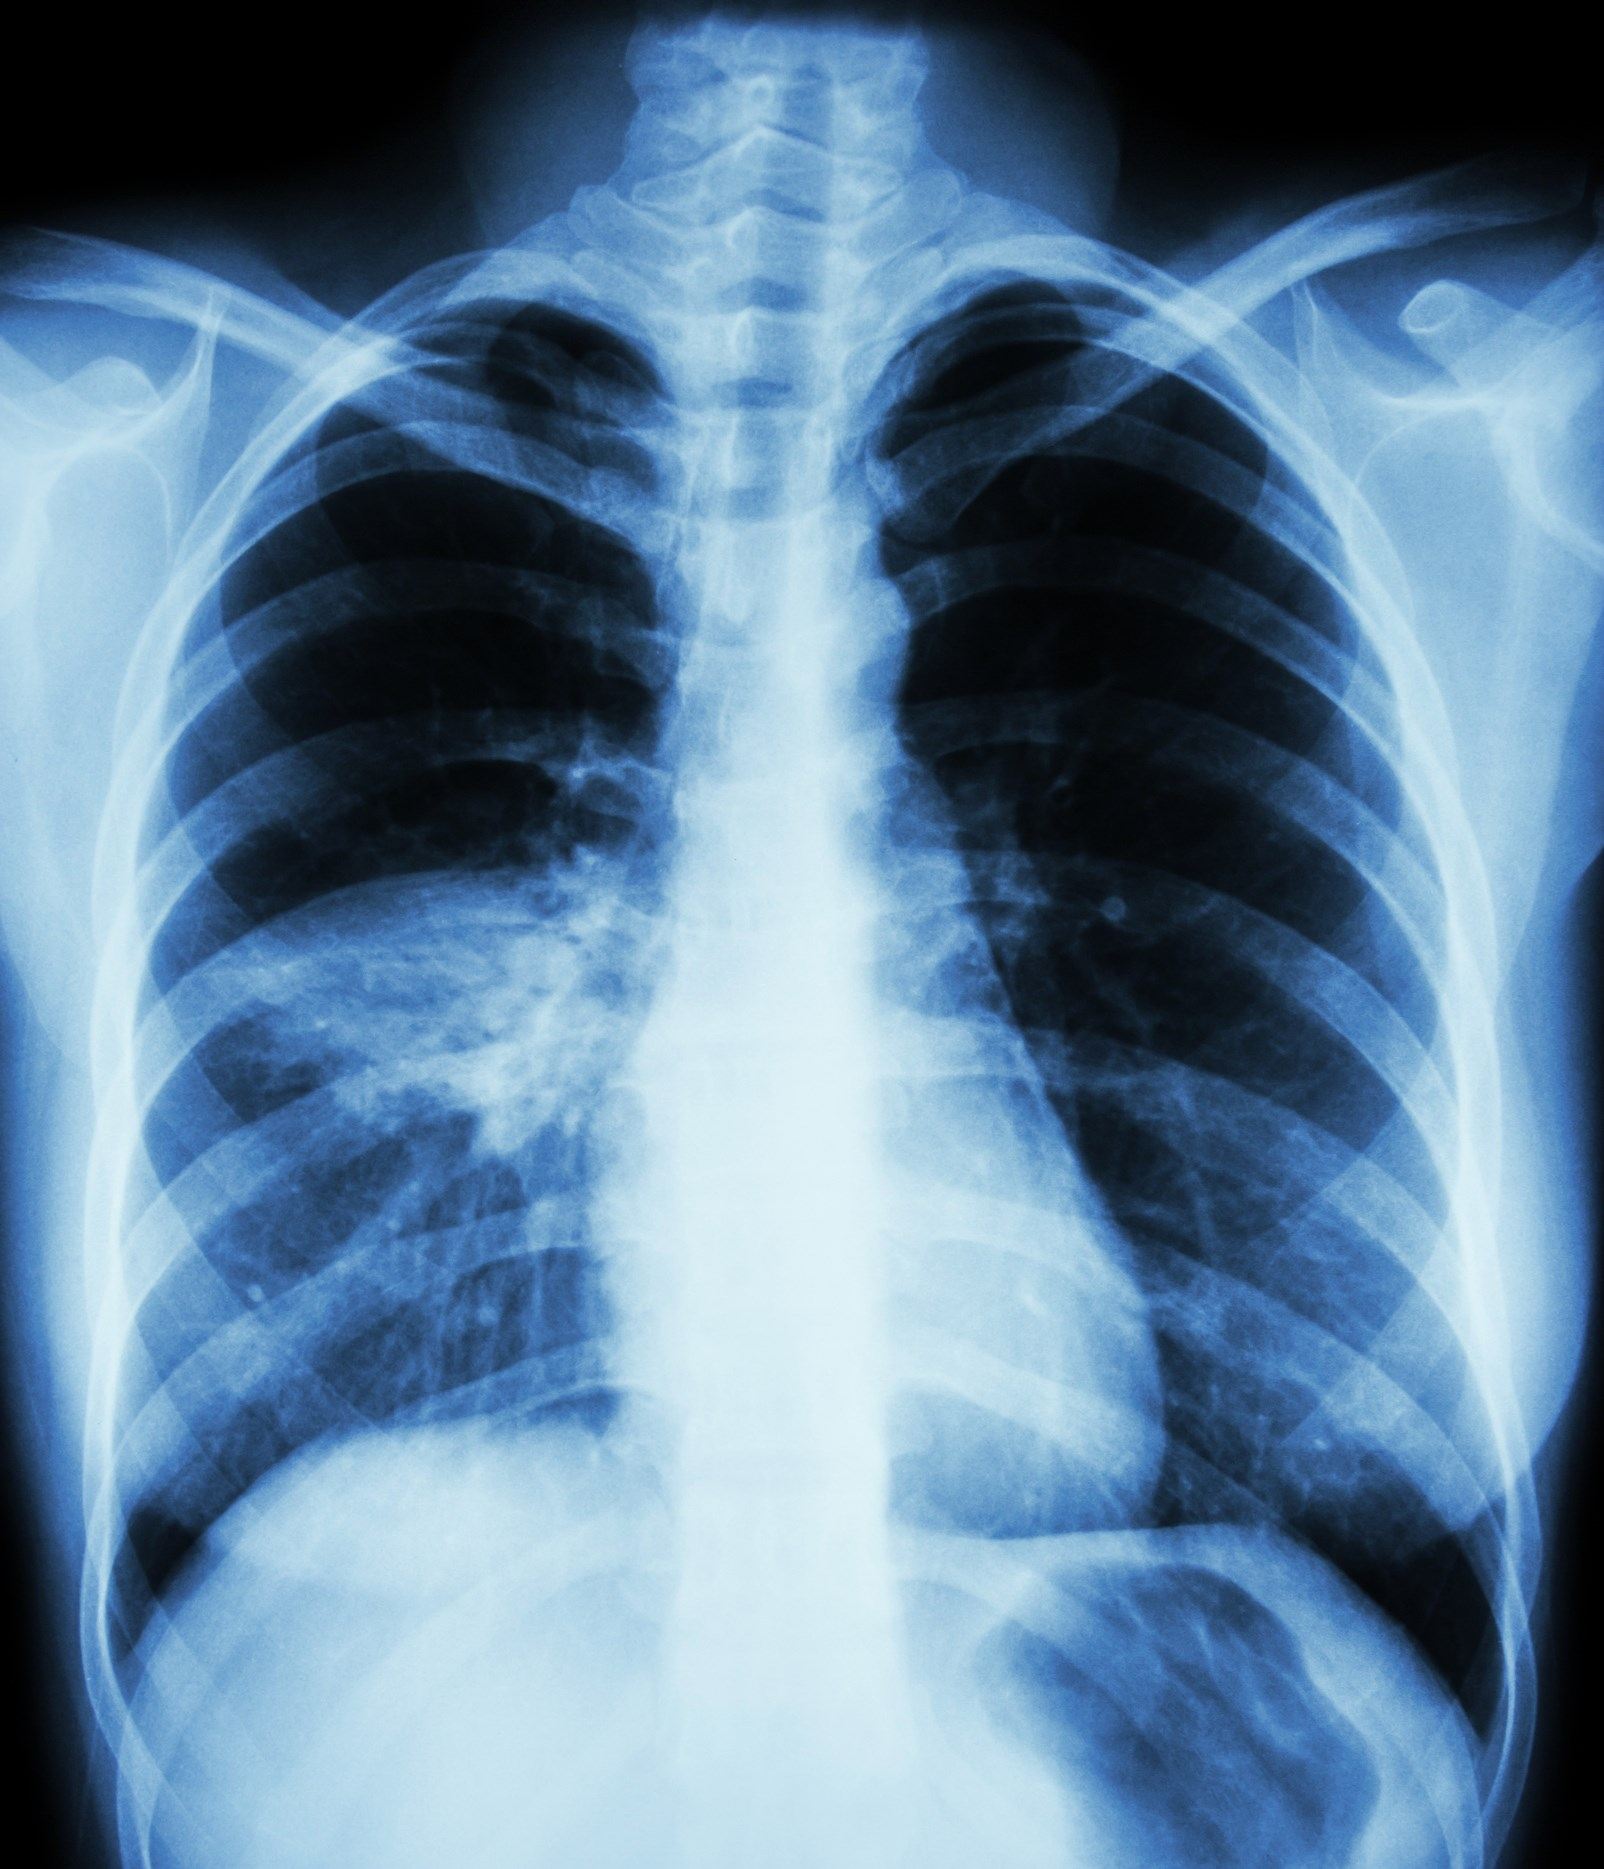 Patients who used benzodiazepines for 30 days or less were at greatest risk for pneumonia.